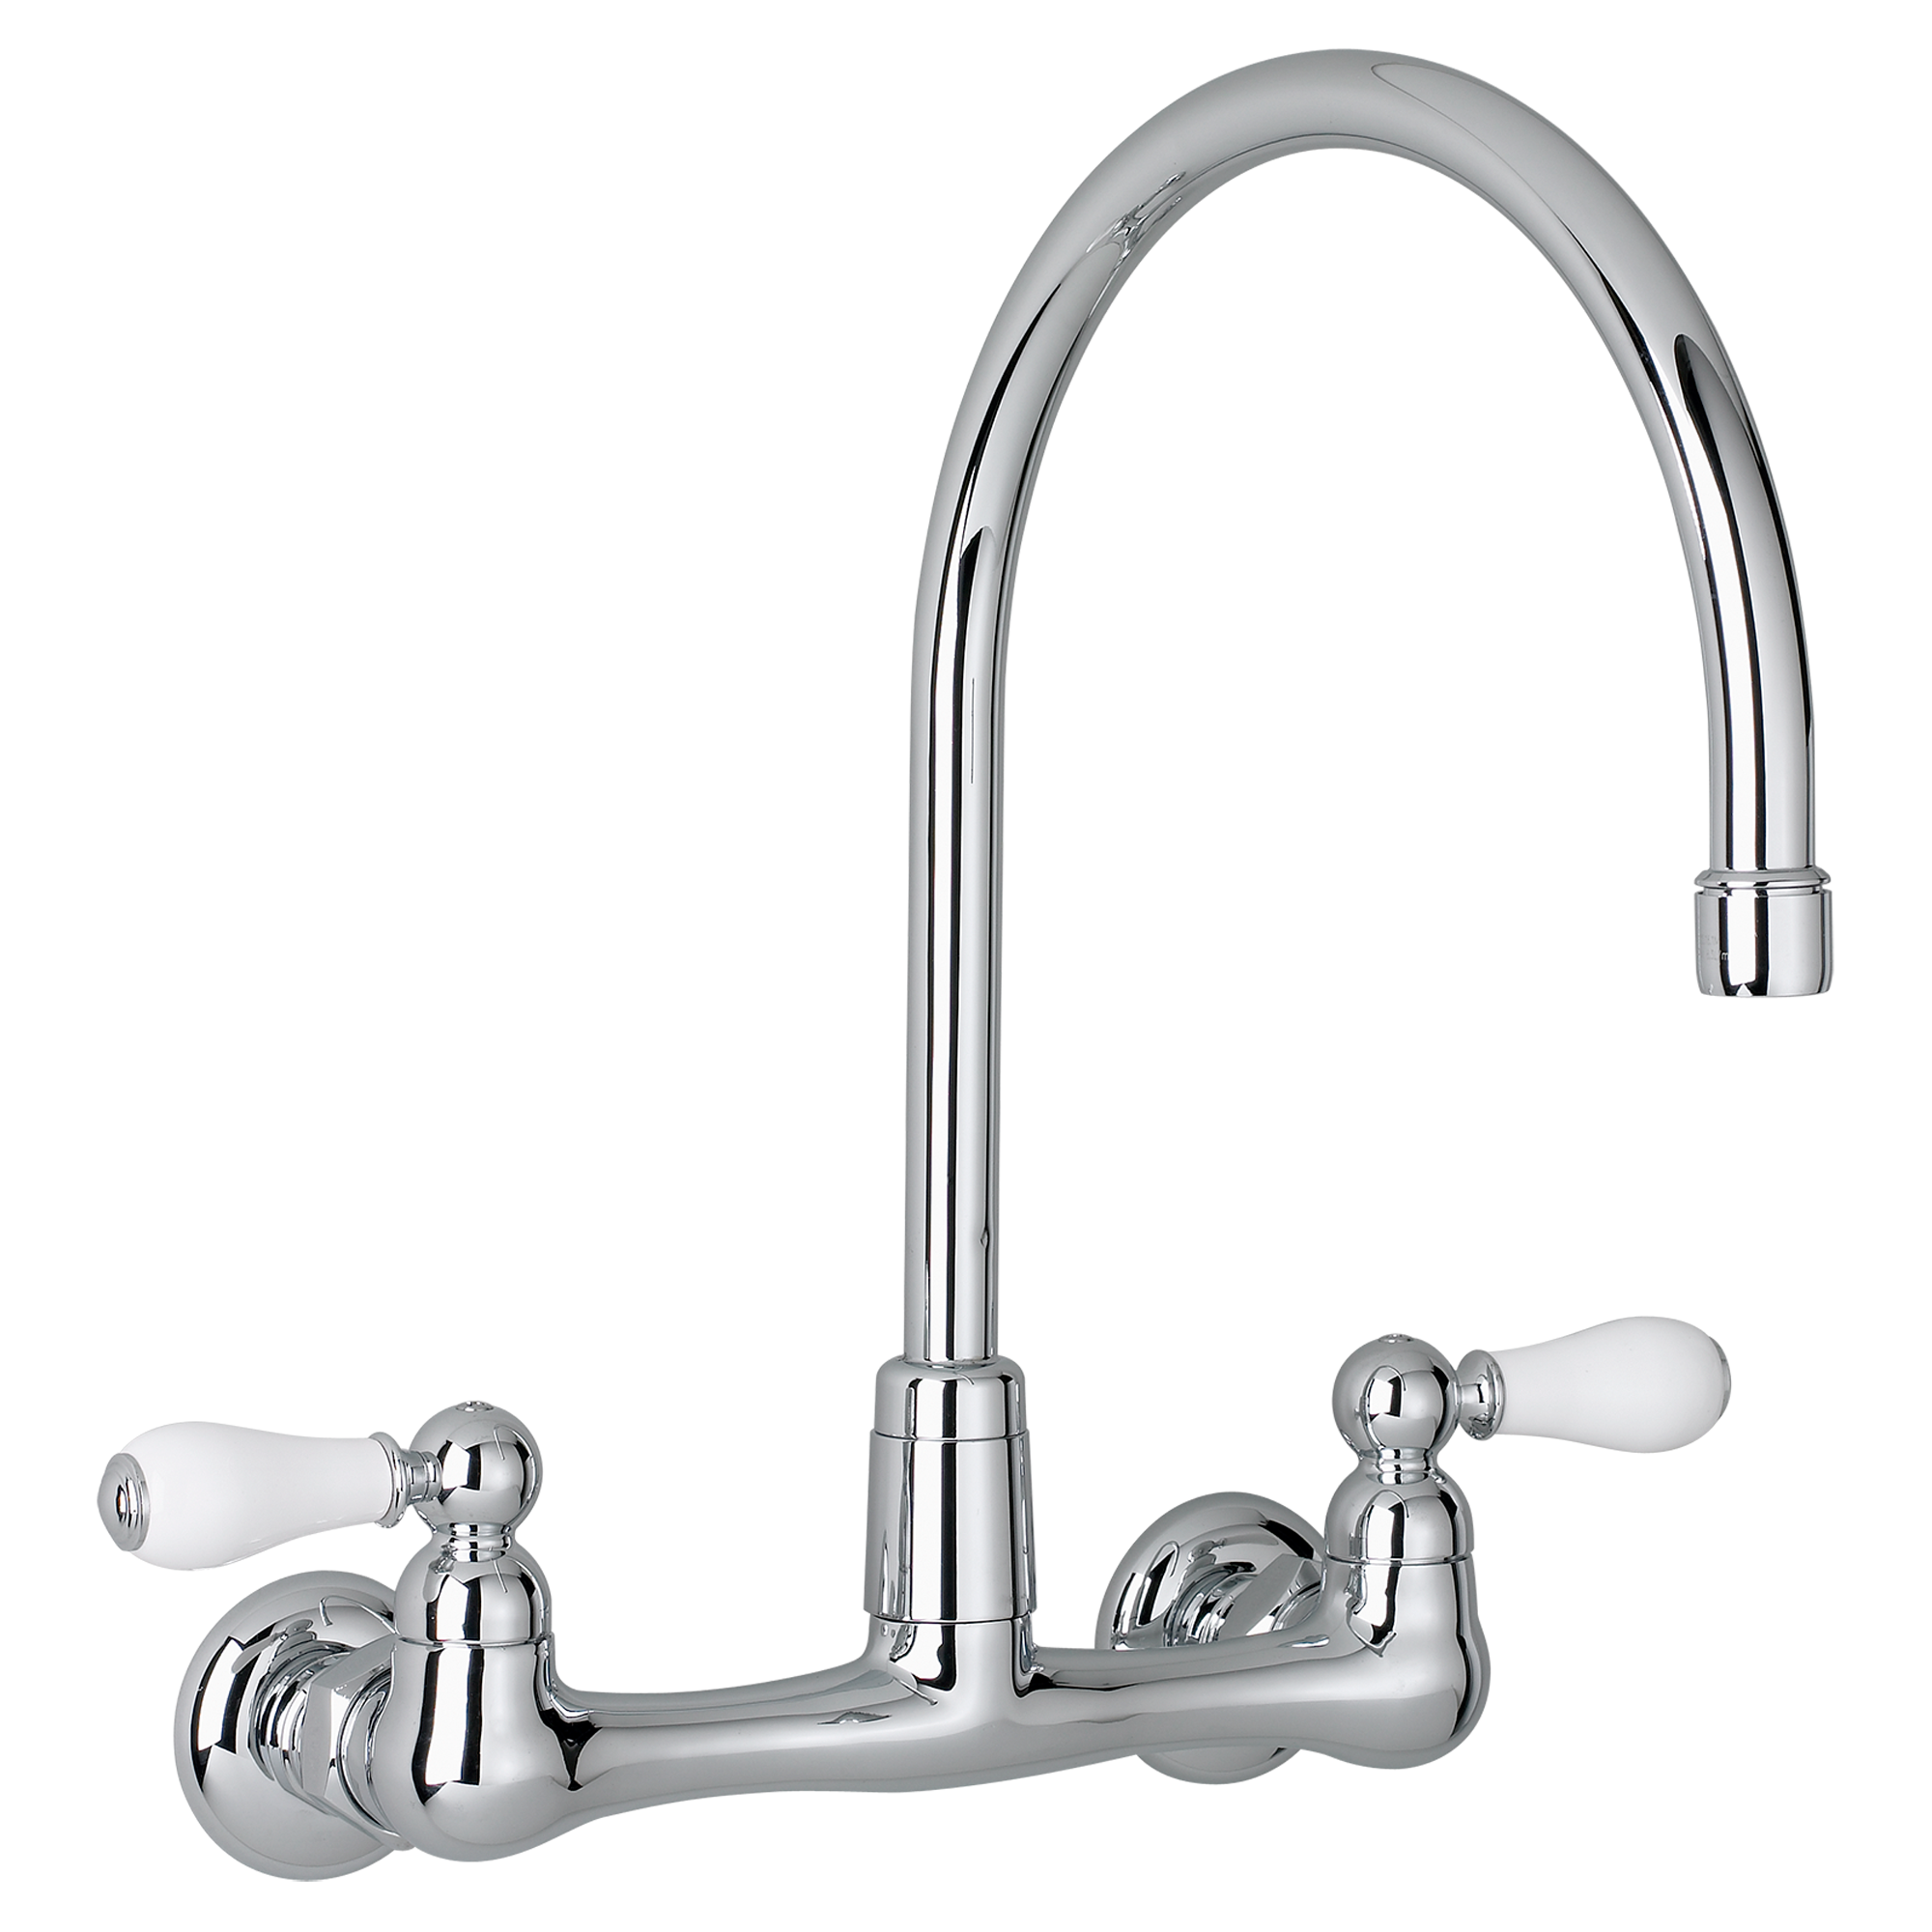 Modern photo products austinmartin. Faucet clipart kitchen faucet